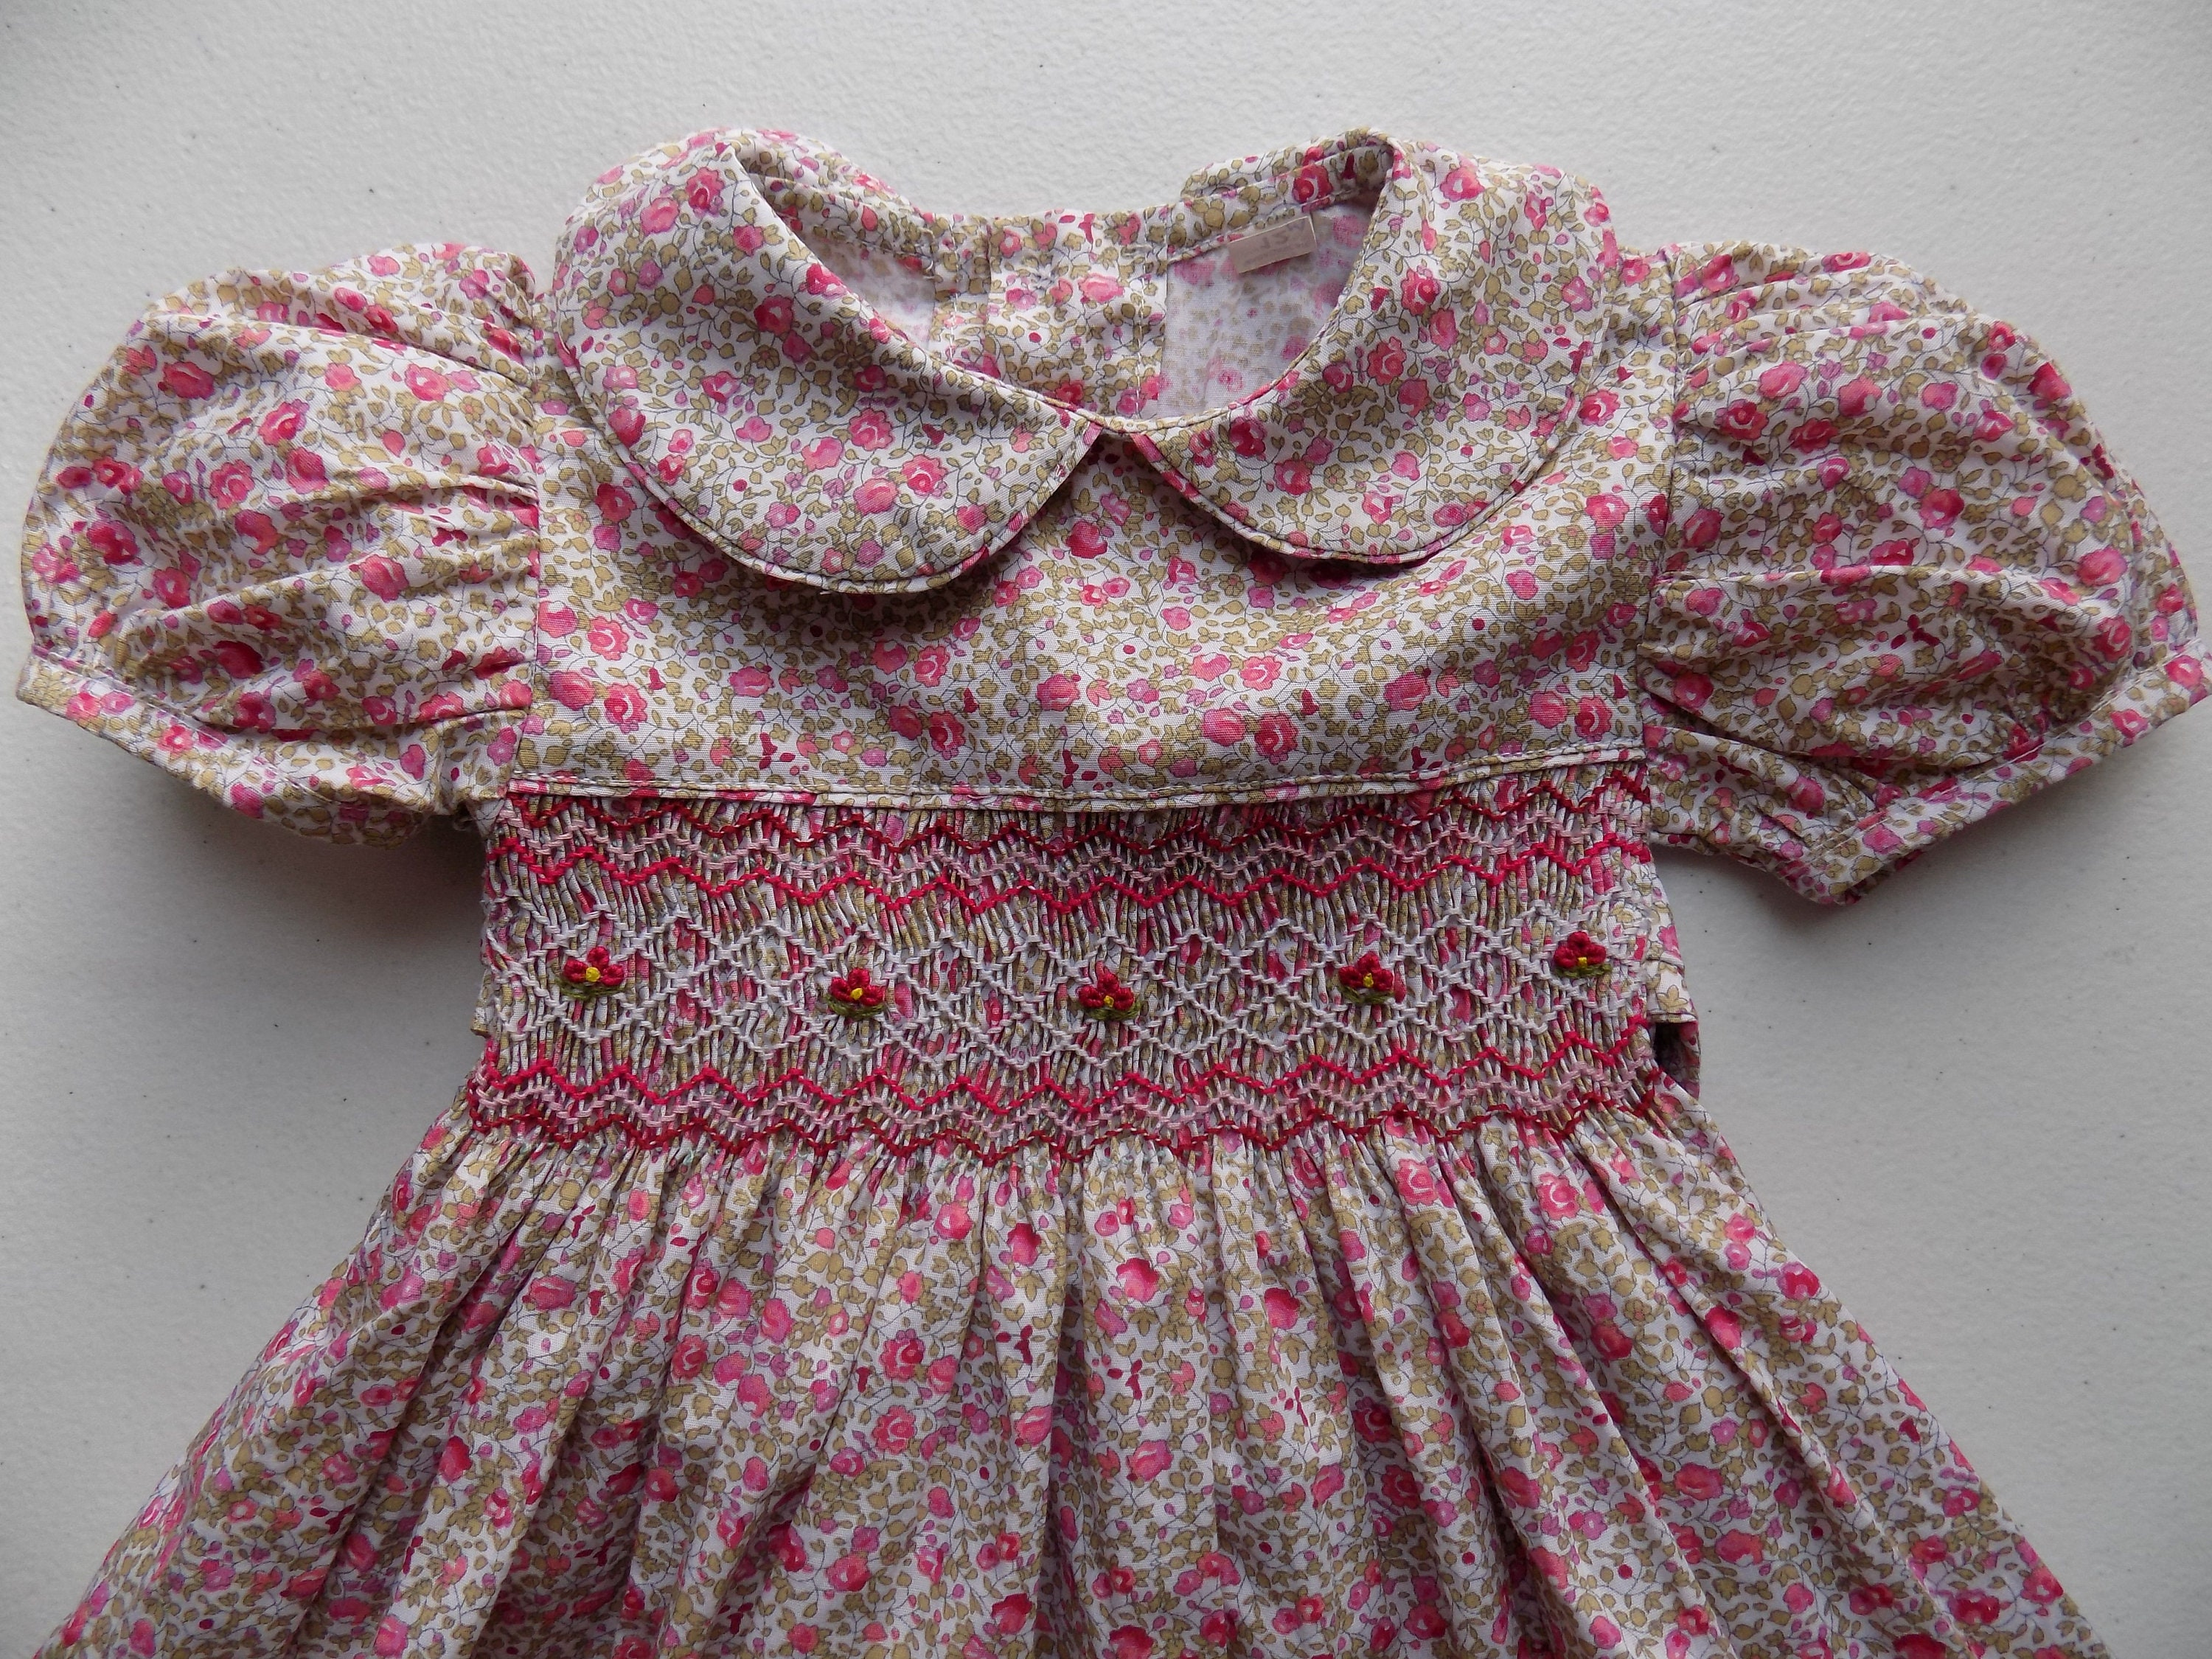 00303a824 Liberty printed cotton dress baby girl/girl flower dress with smocking from  3 months to 12 months/2 to 12 years